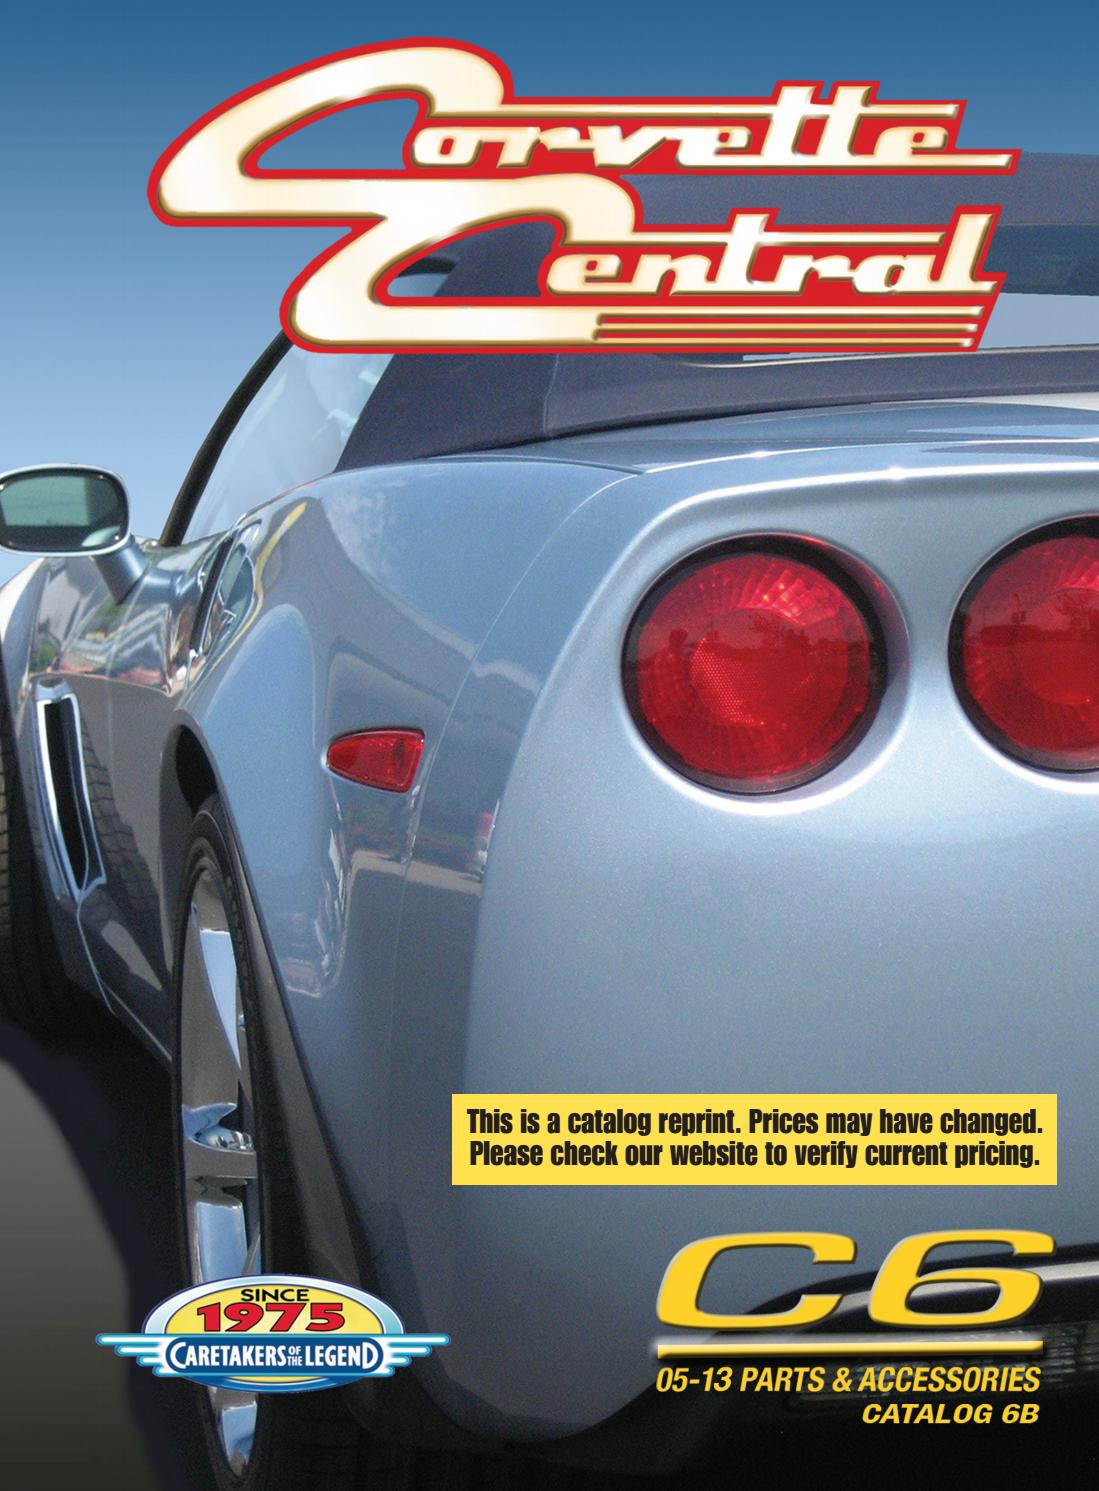 Corvette Central C6 (05-13) Corvette Parts Catalog by Corvette Central -  issuu